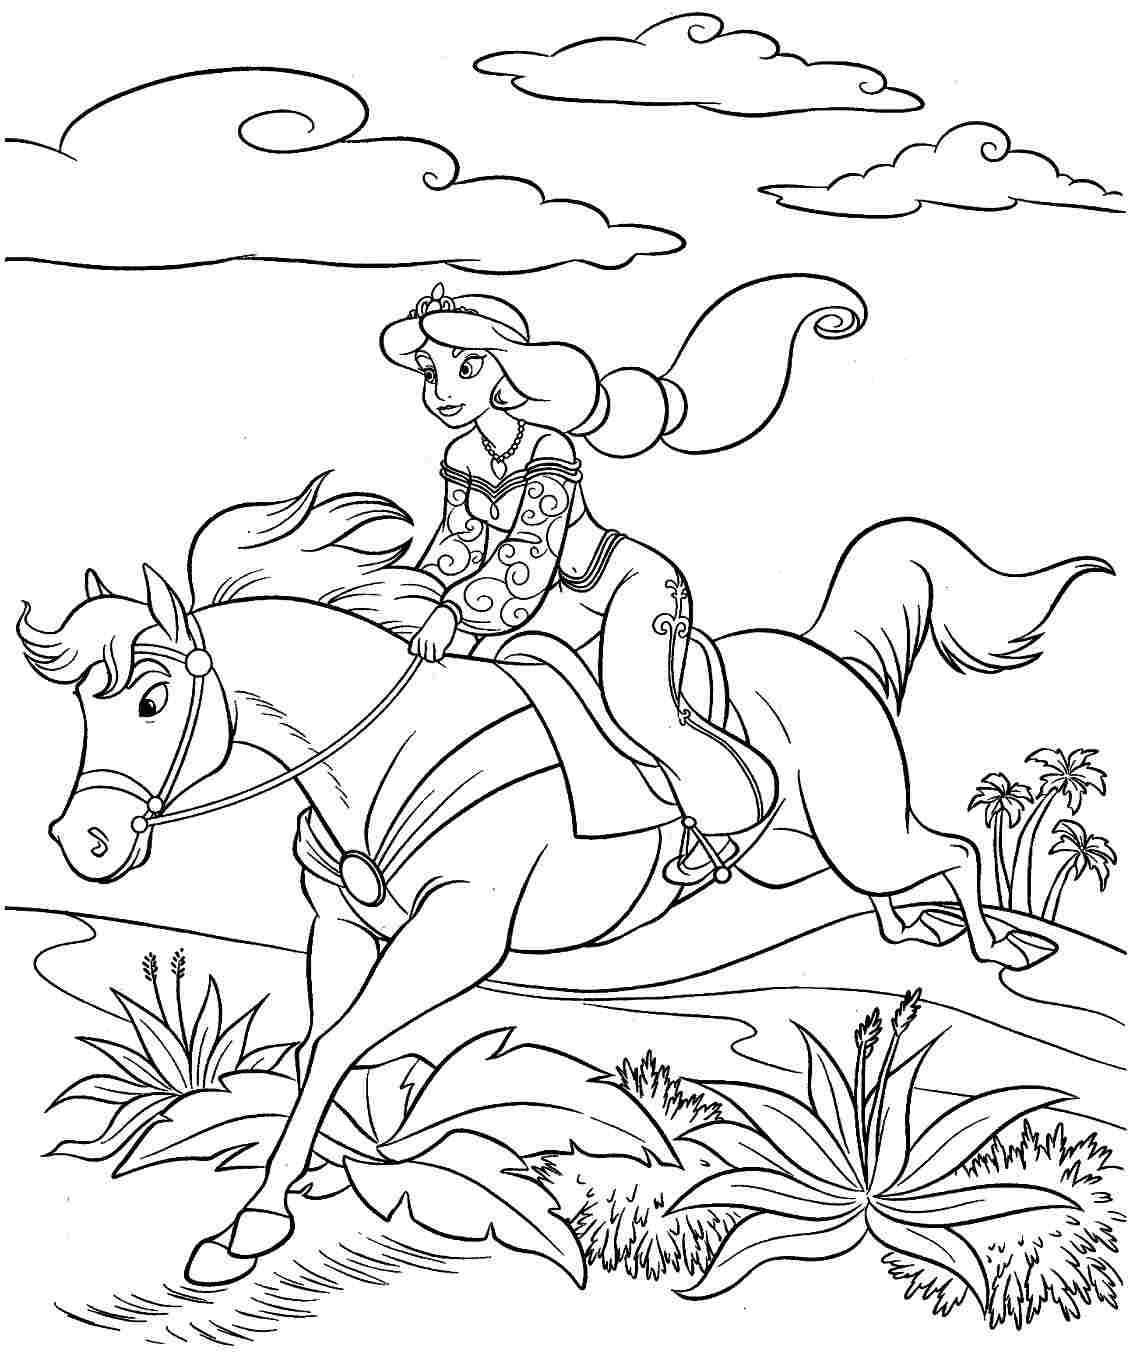 Princess Riding Horse Coloring Page Through The Thousands Of Pictures Online With Princess Coloring Pages Horse Coloring Pages Disney Princess Coloring Pages